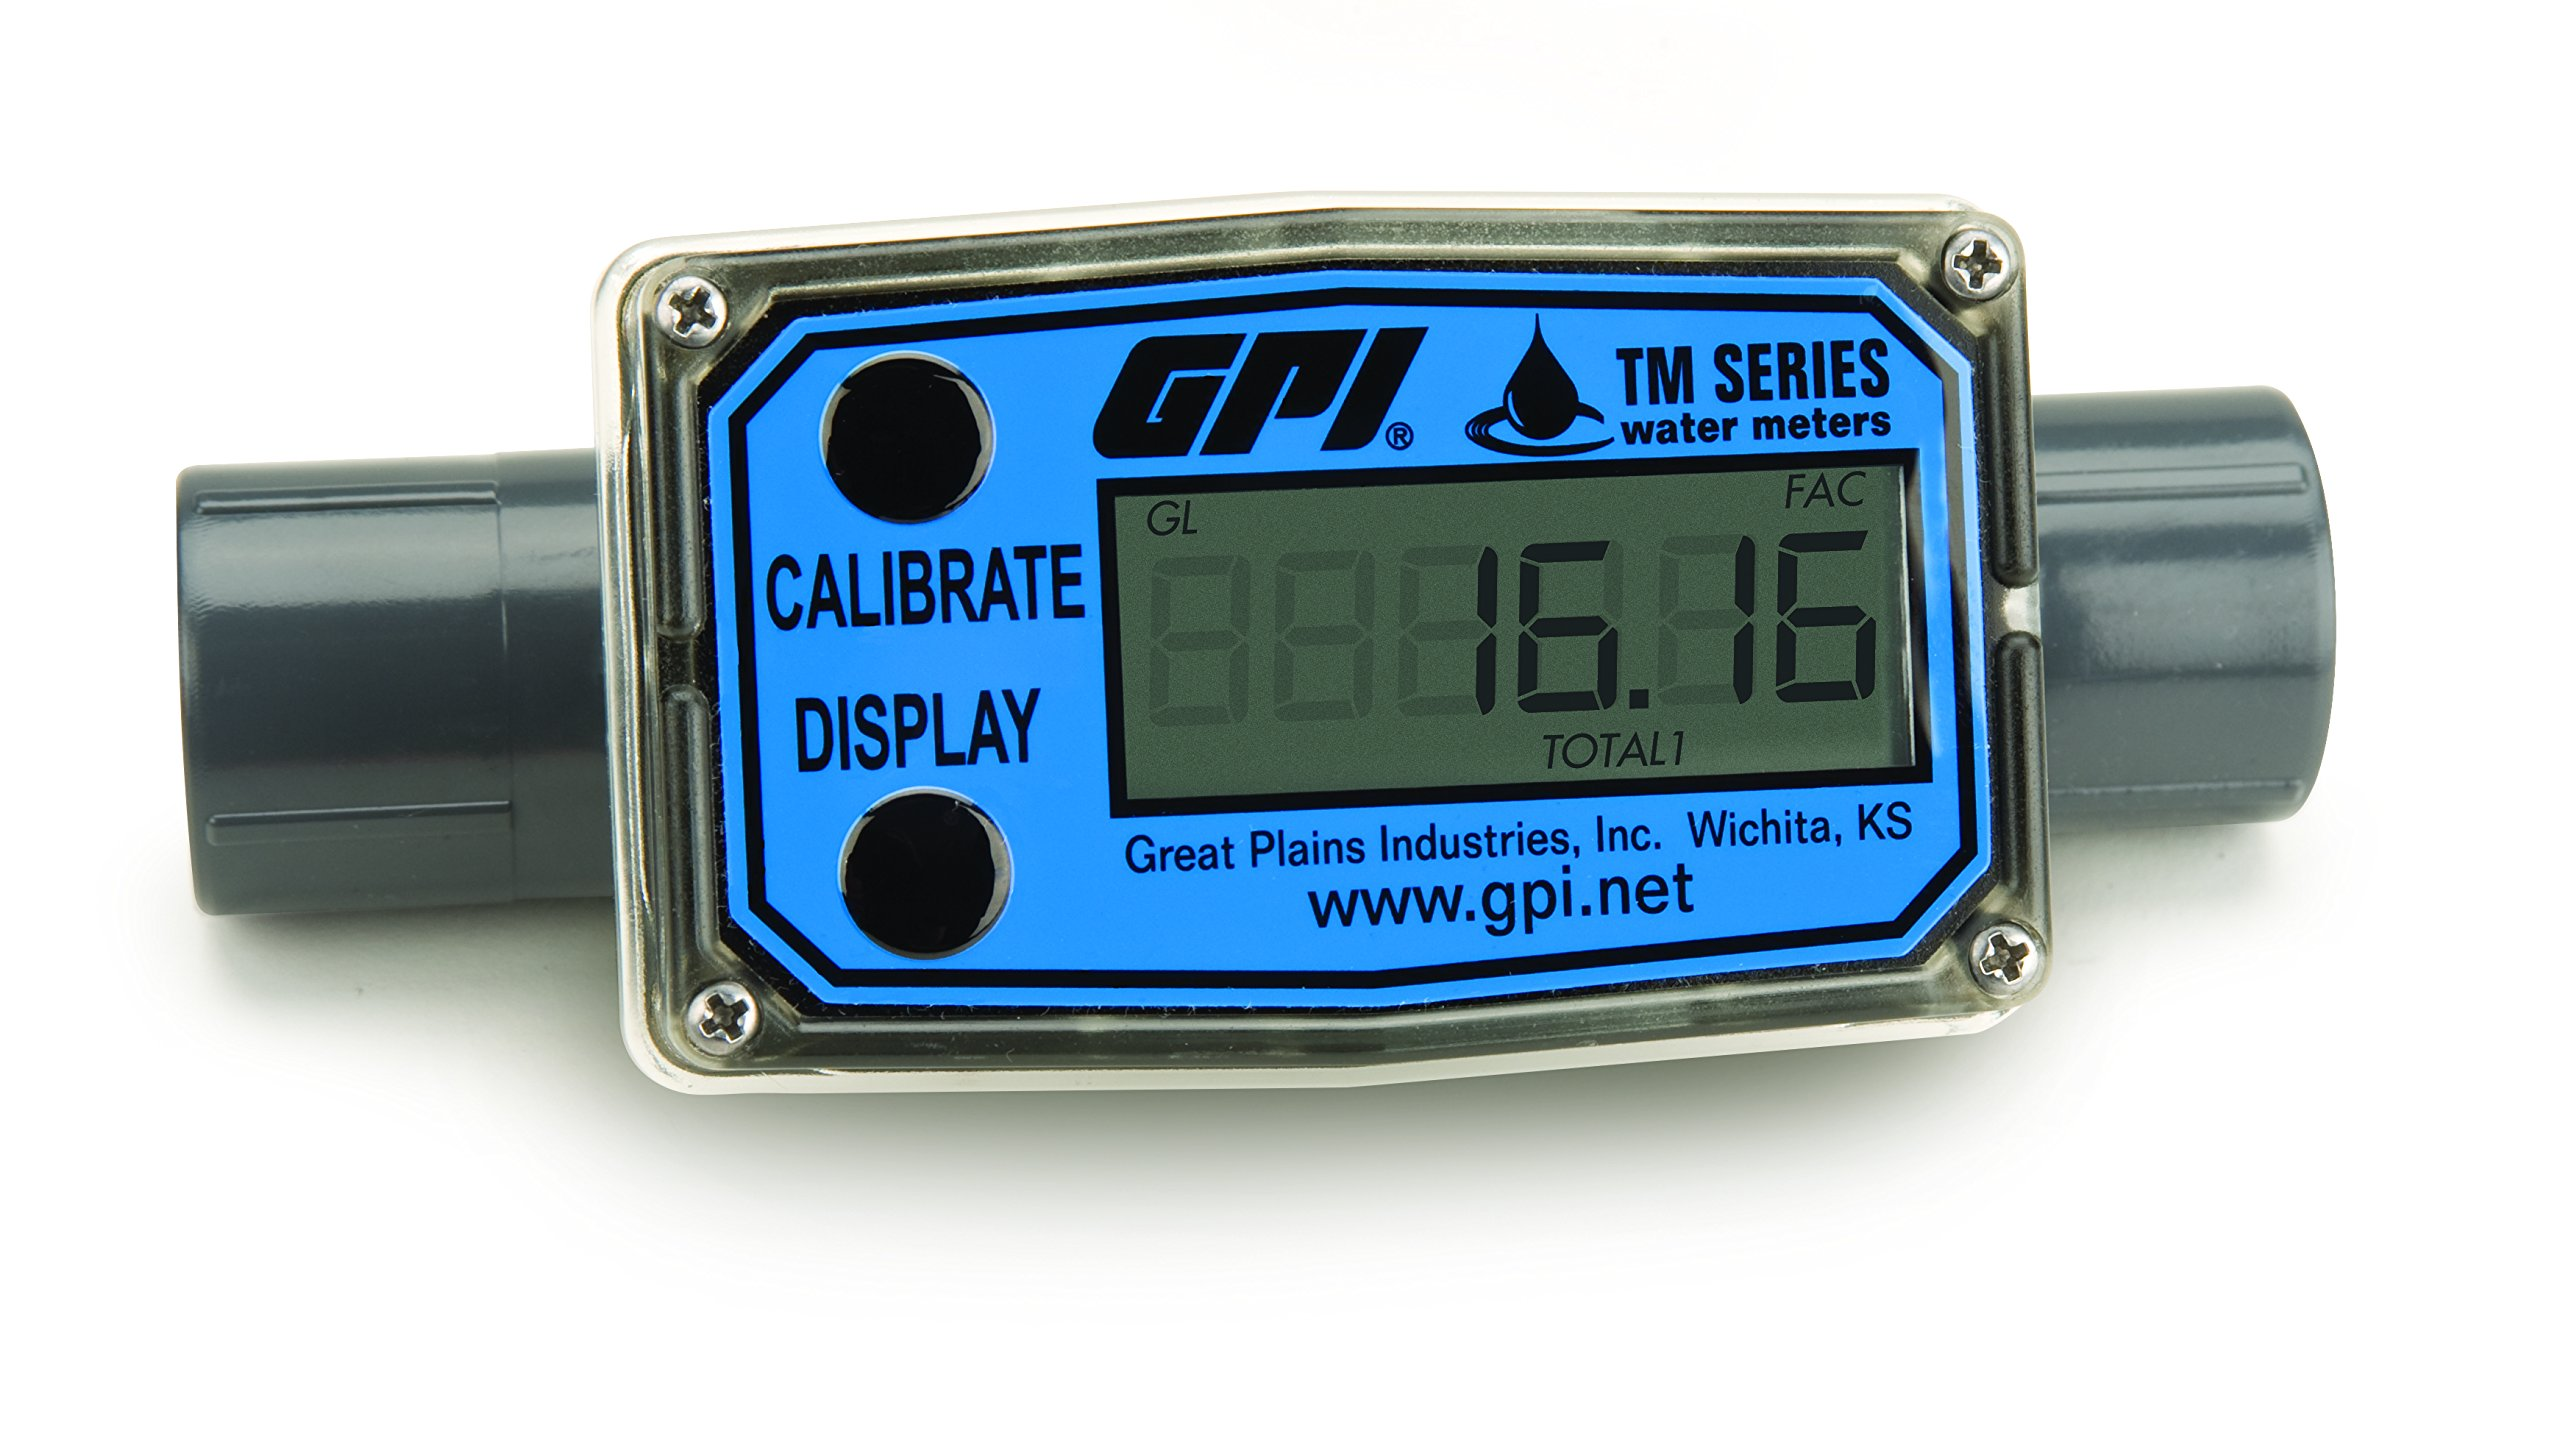 FLOMEC TM050-N, PVC Turbine Flowmeter for Use with Water & Mild Chemicals, 0.5-Inch FNPT Fitting, 1-10 GPM, LCD Display, +/-3 Percent Accuracy, Durable Schedule 80 PVC